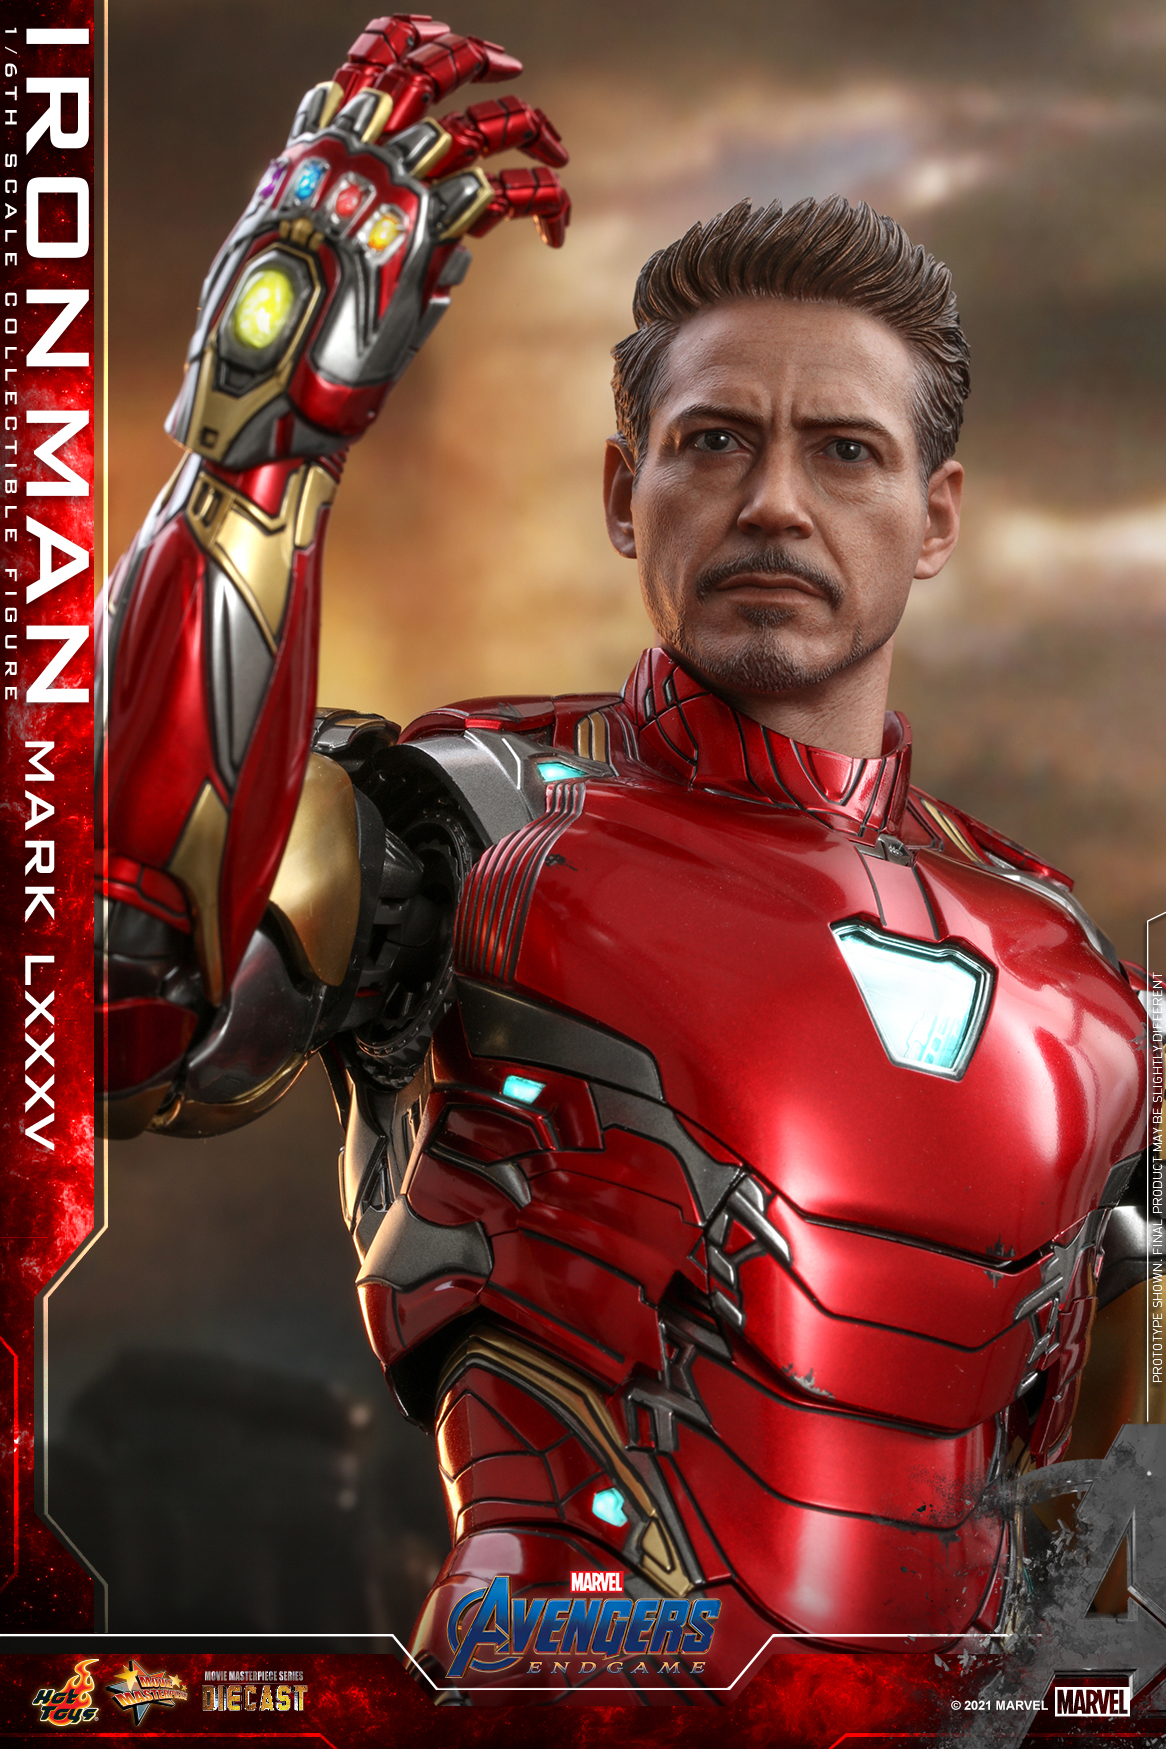 Hot Toys Avengers Endgame Iron Man Mark LXXXV collectible figure_updated head sculpt_PR4_